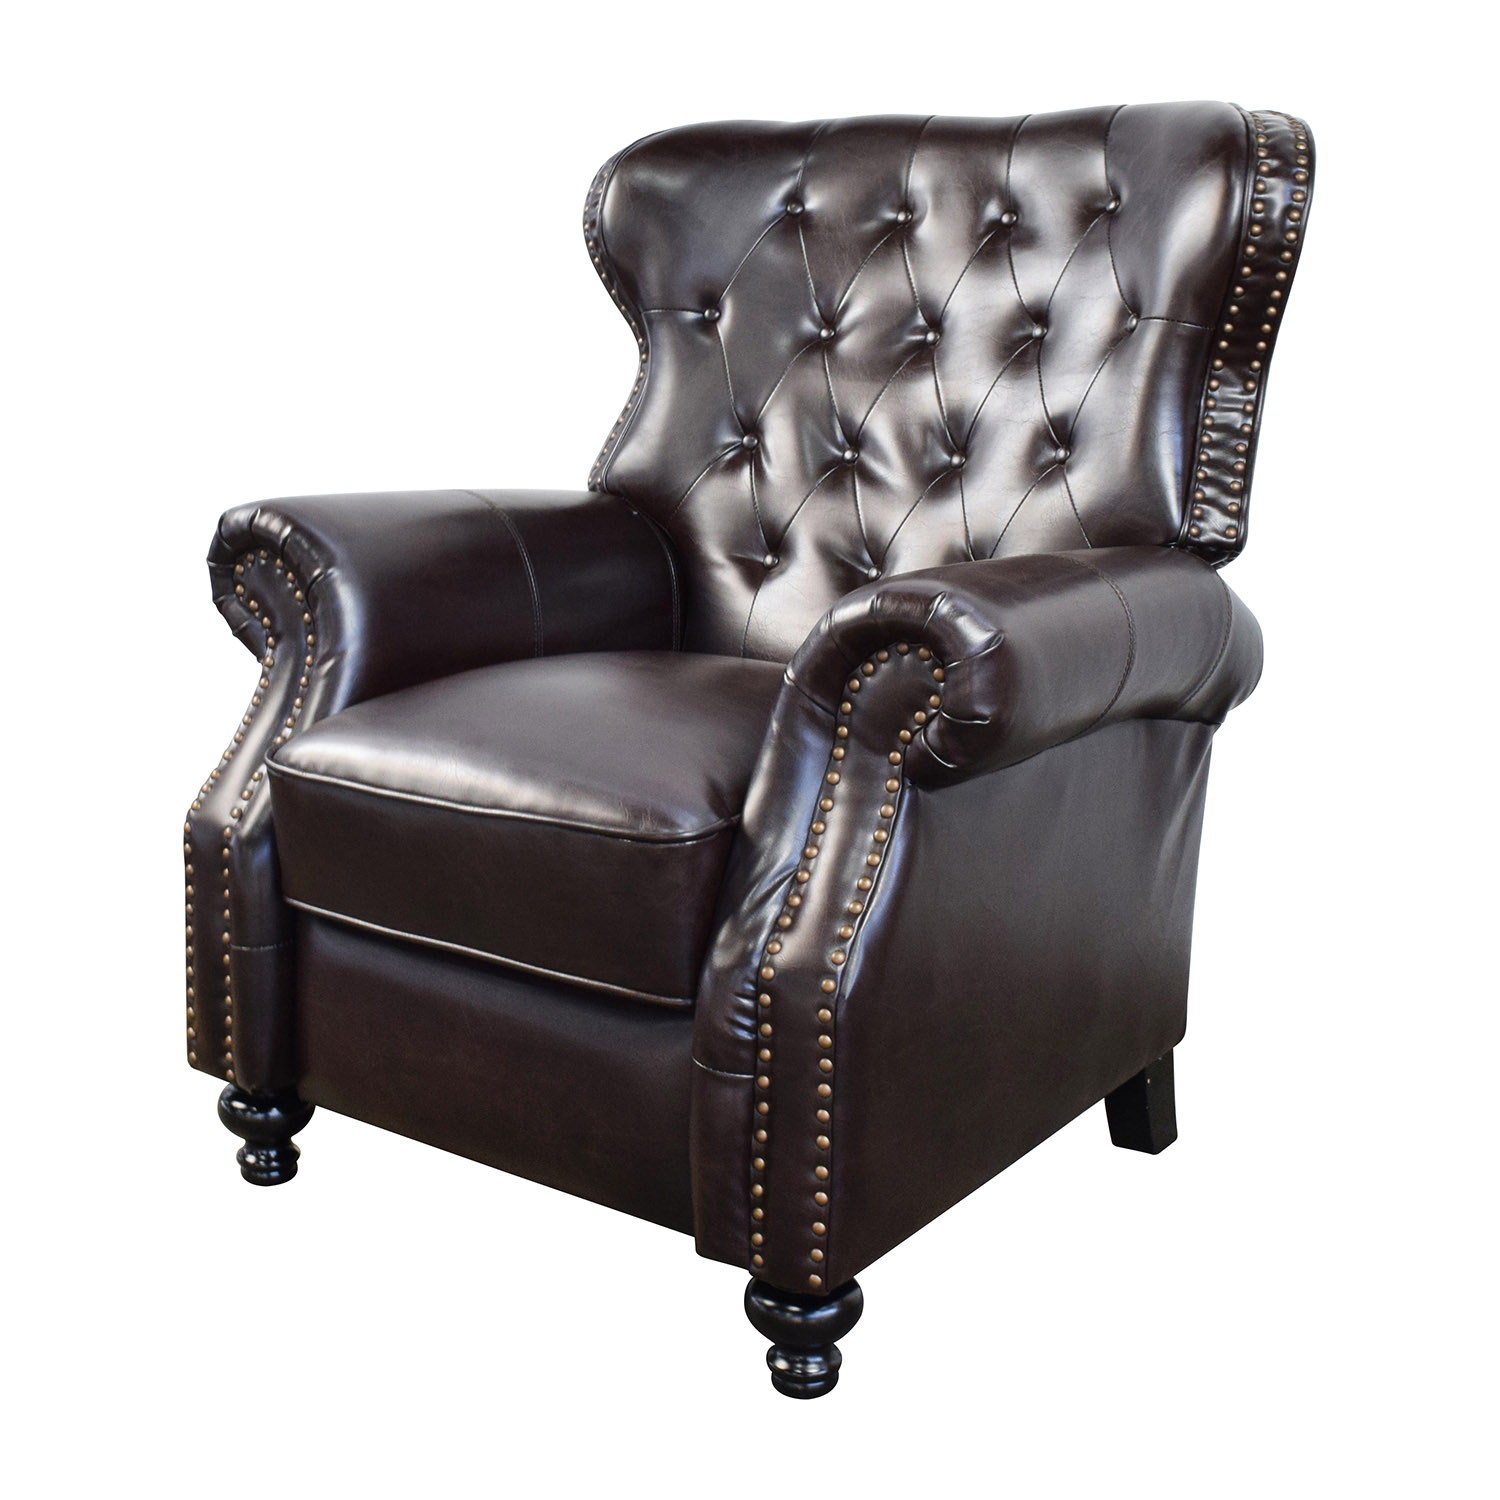 58 Off Tufted Brown Leather Recliner Chairs